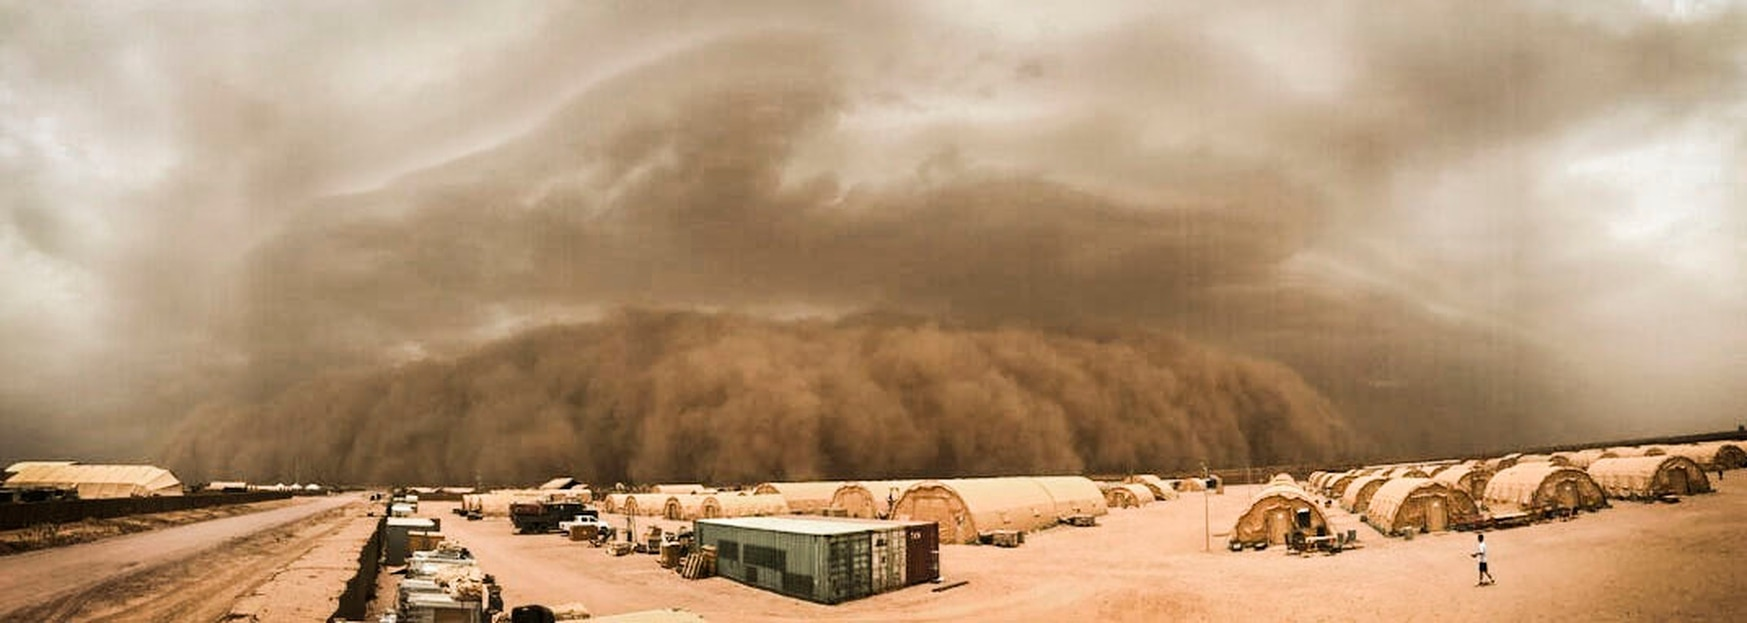 A sand storm descends on the air base in Niger. (Airman 1st Class Thomas Jamison/Air Force)